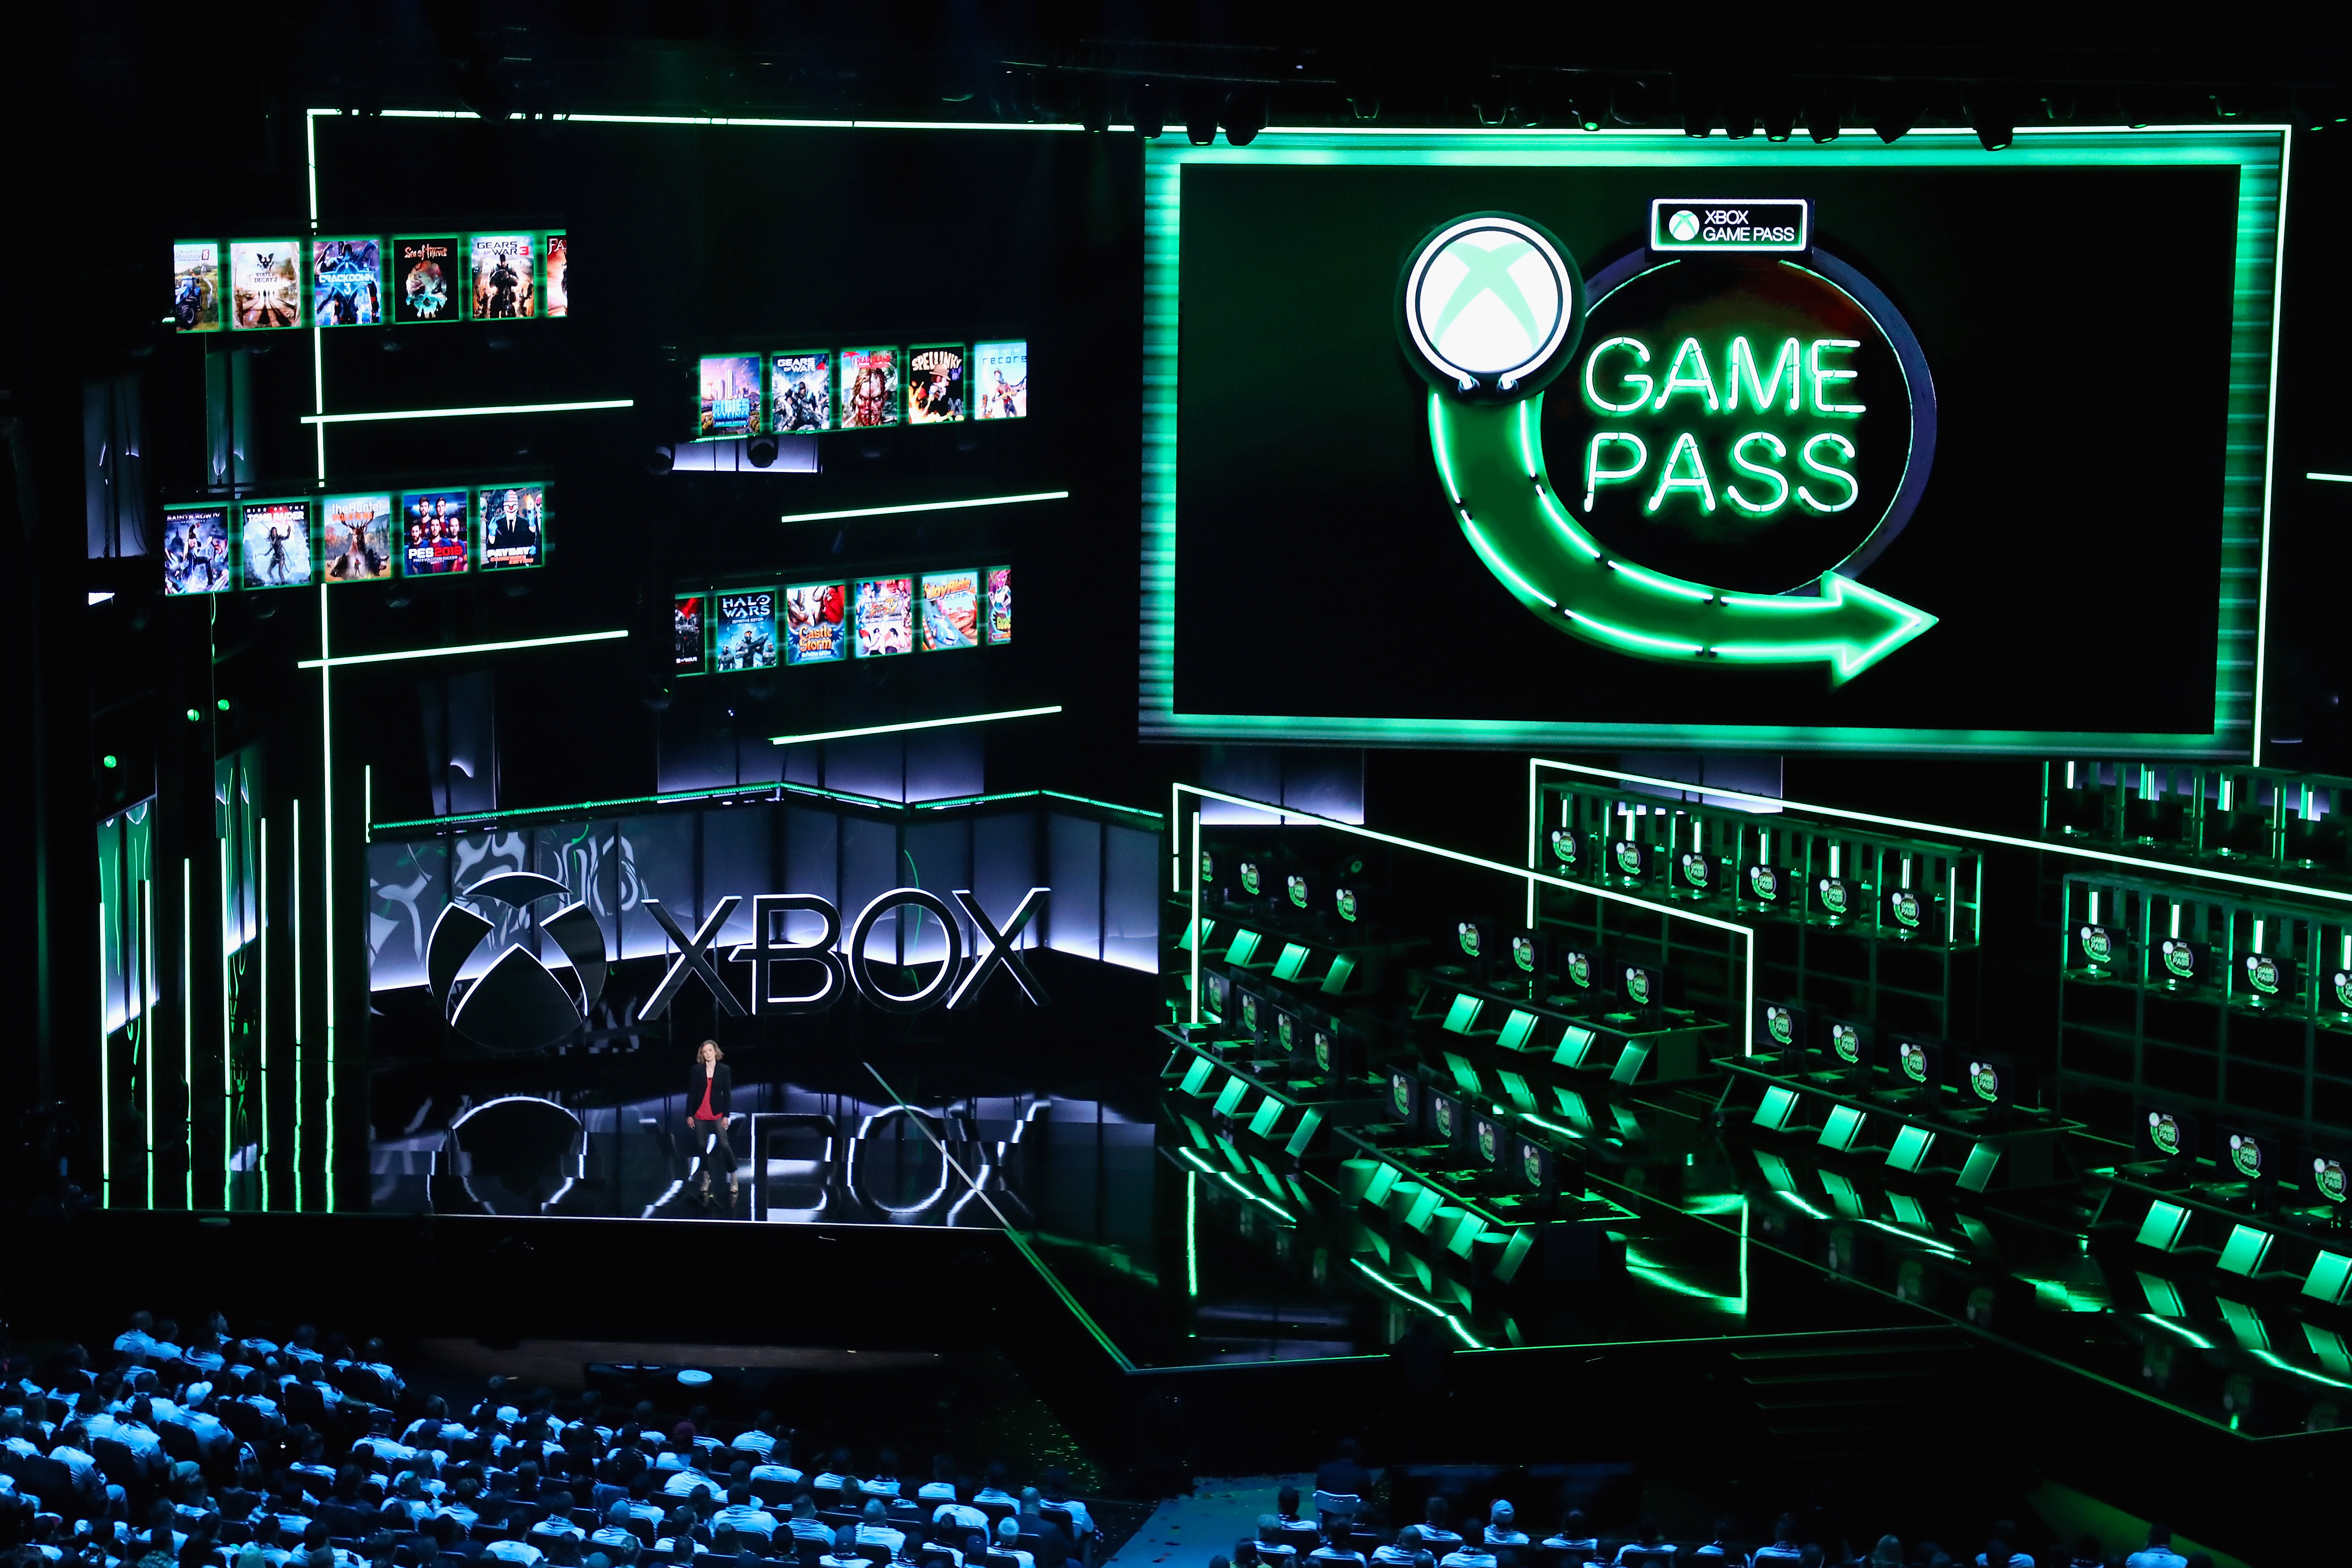 Microsoft Announces Its Latest XBox Games At E3 Conference